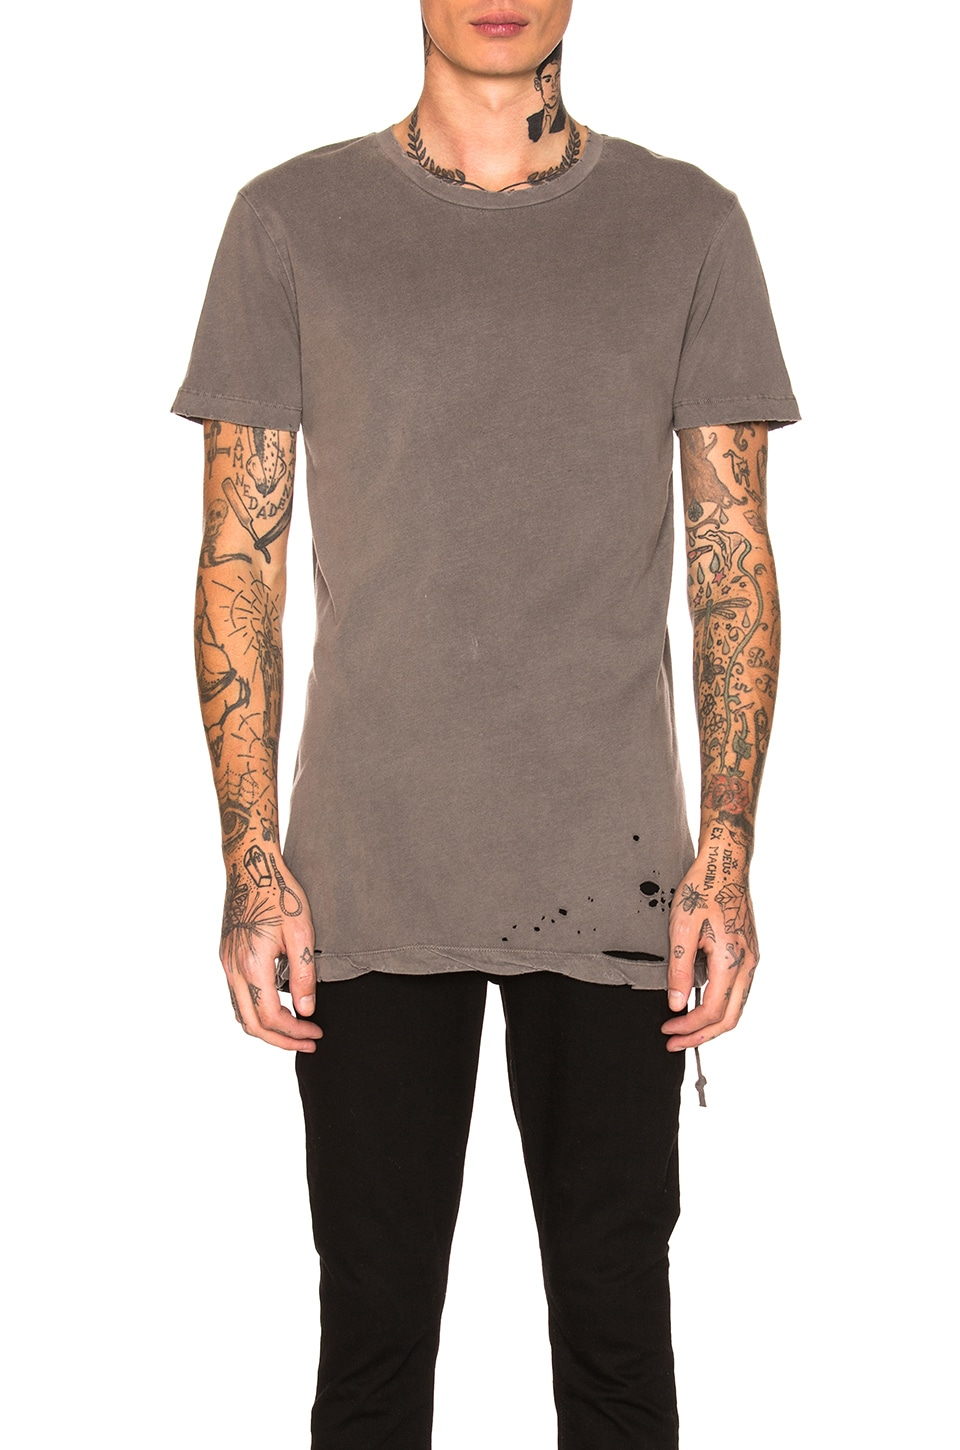 Ksubi Sioux Tee in Grey